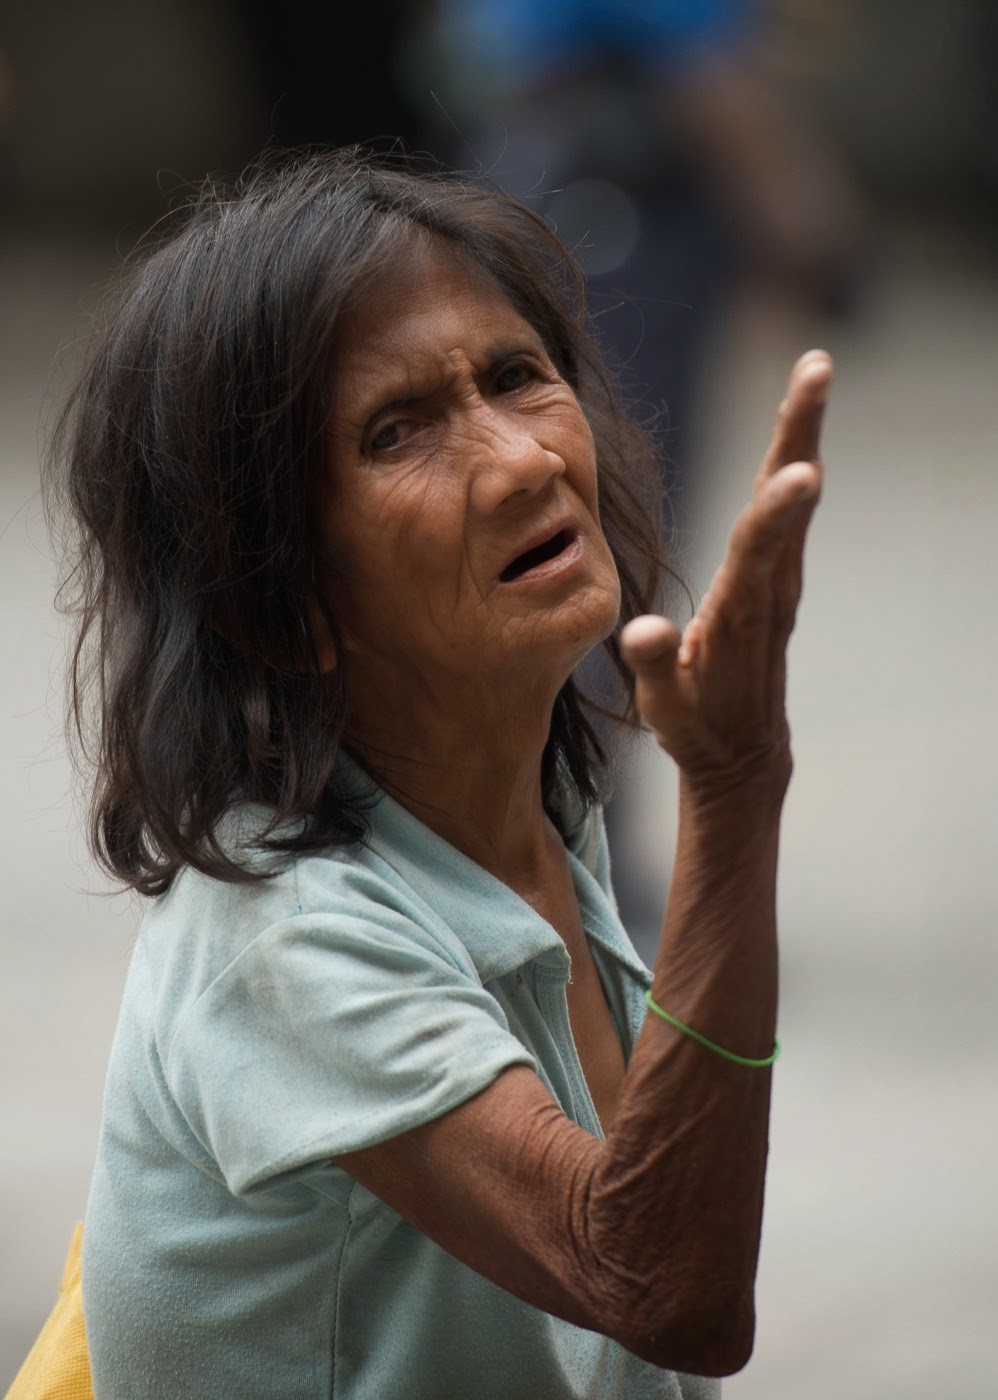 A woman begs for charity outside of a Catholic Church in Manilla, Phillipines.